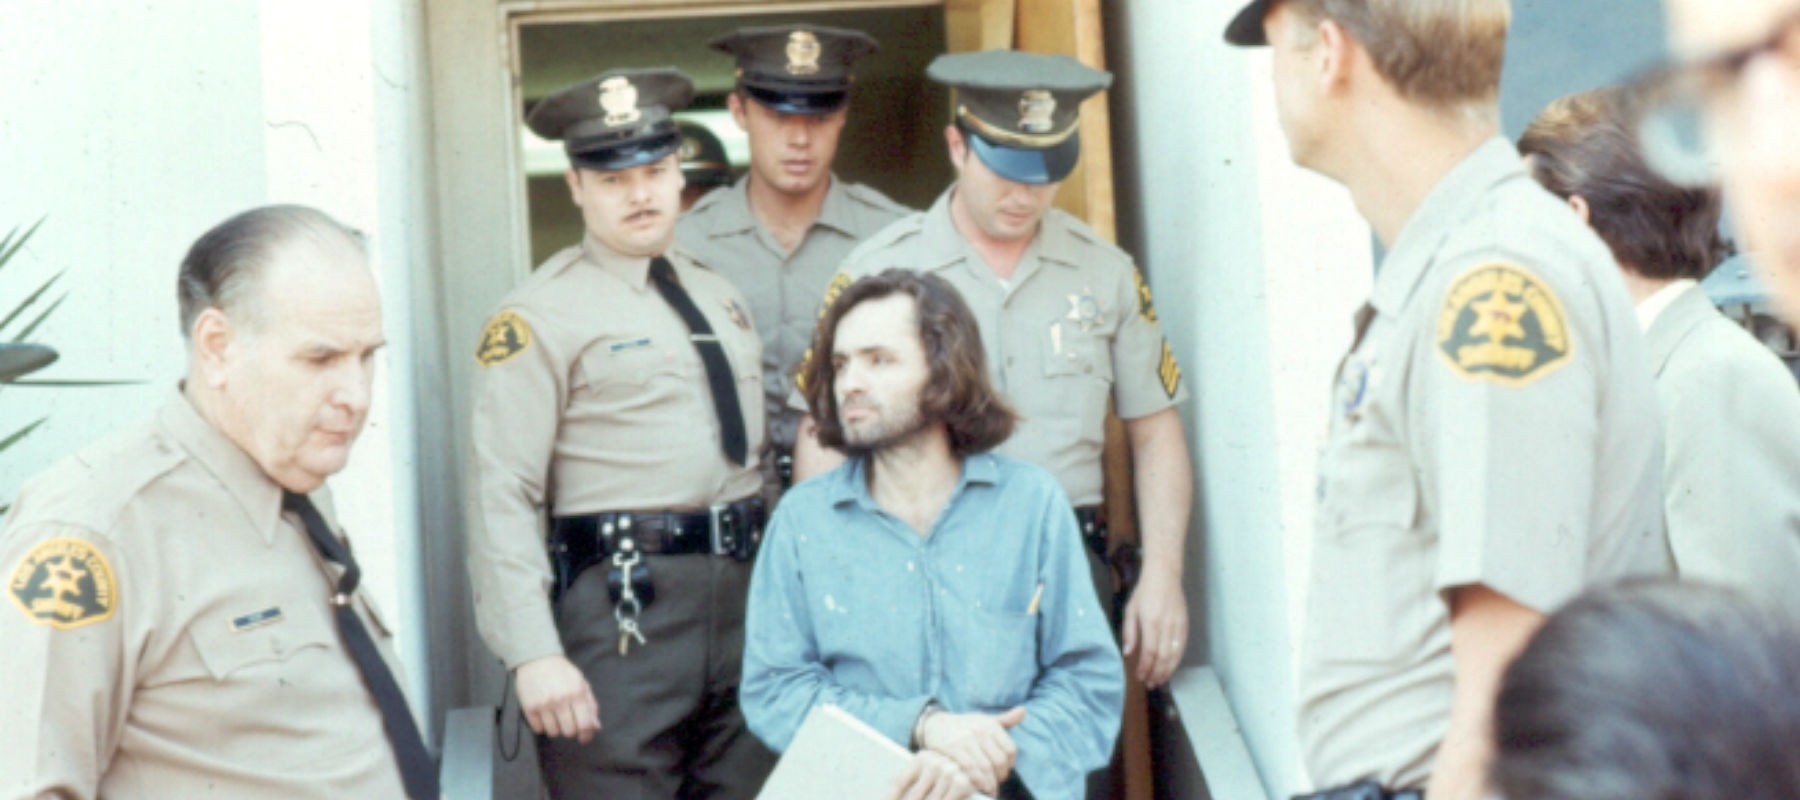 charles manson vs woodstock s 1994 cover story summer of credit getty images